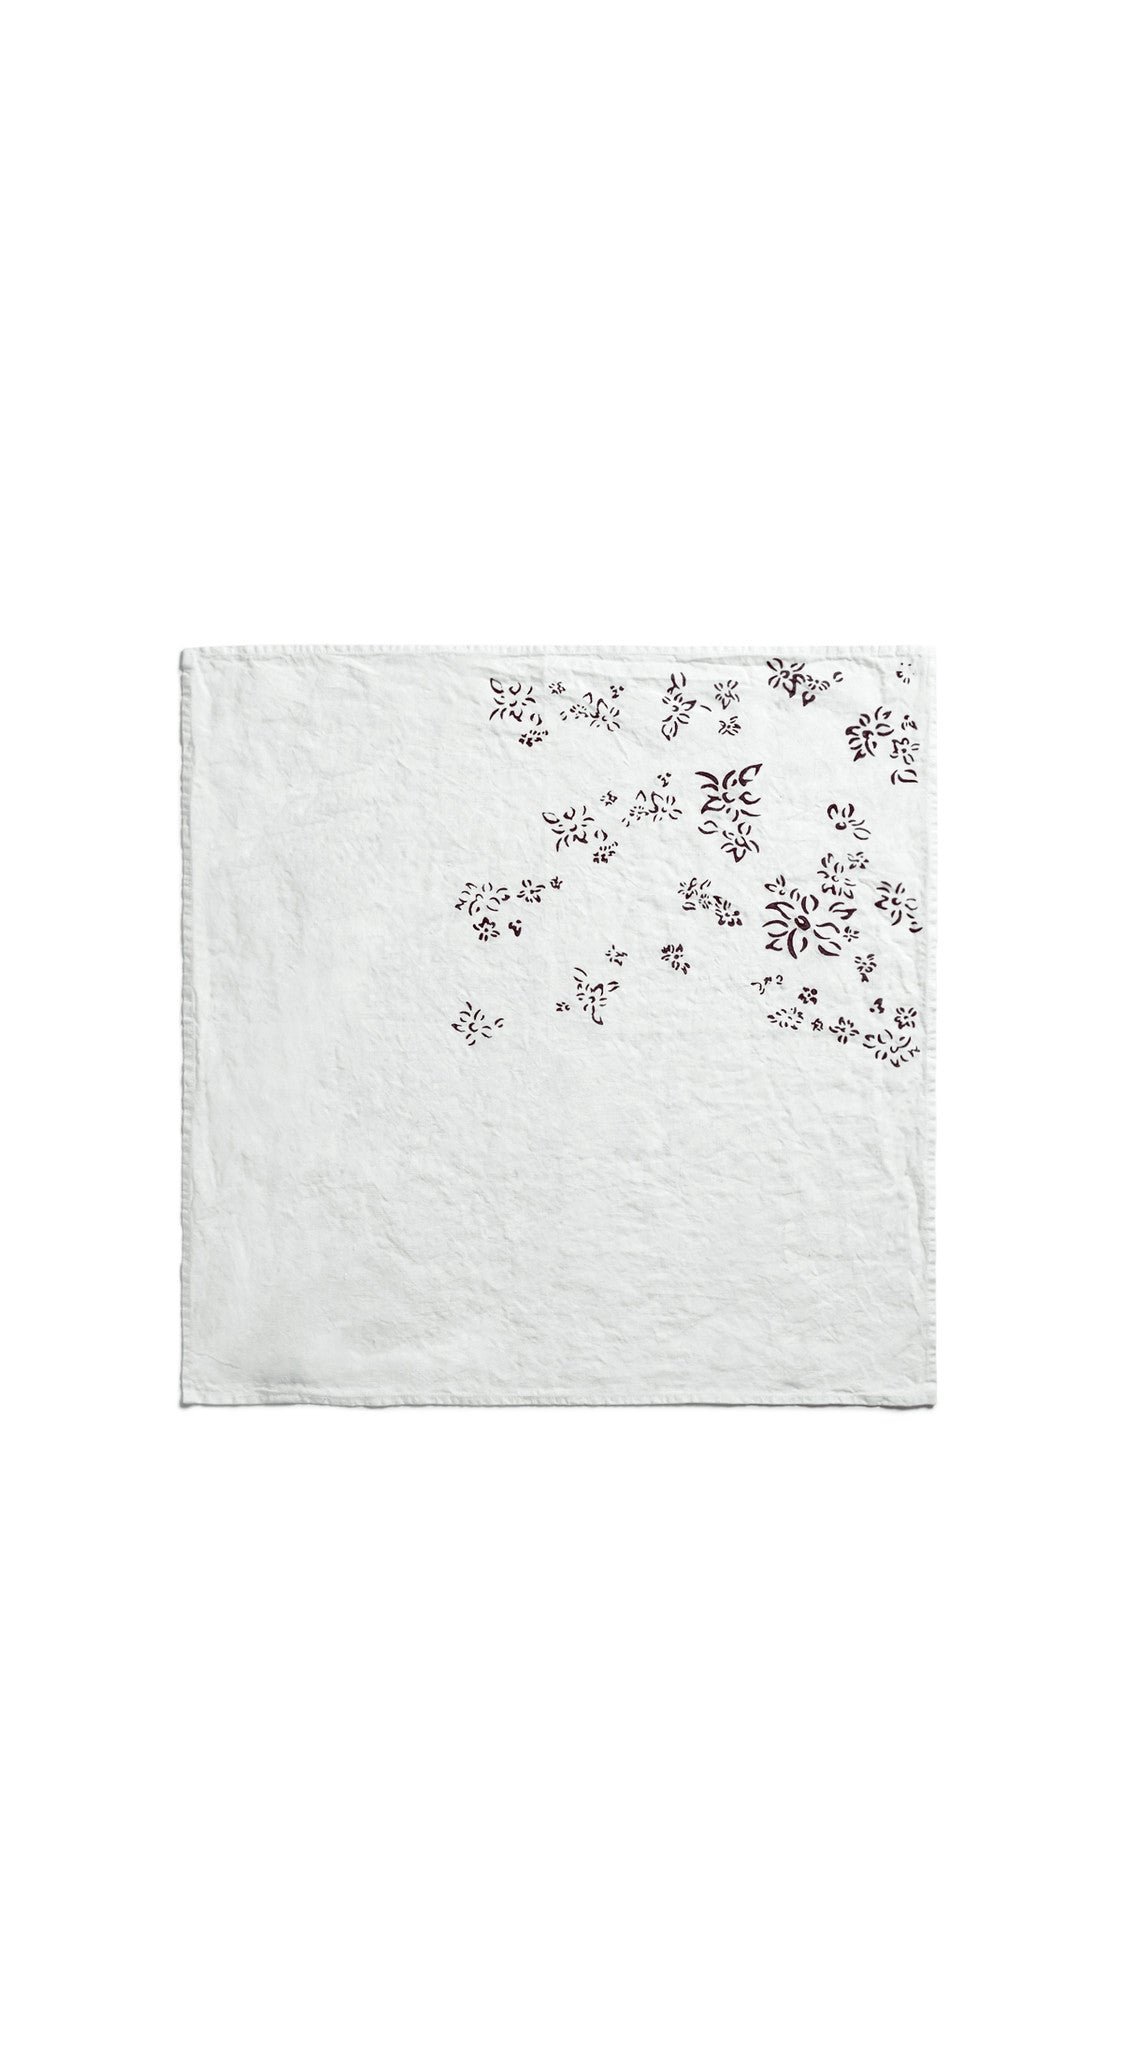 Bernadette's Hand Stamped Falling Flower Linen Napkin in Grape Purple